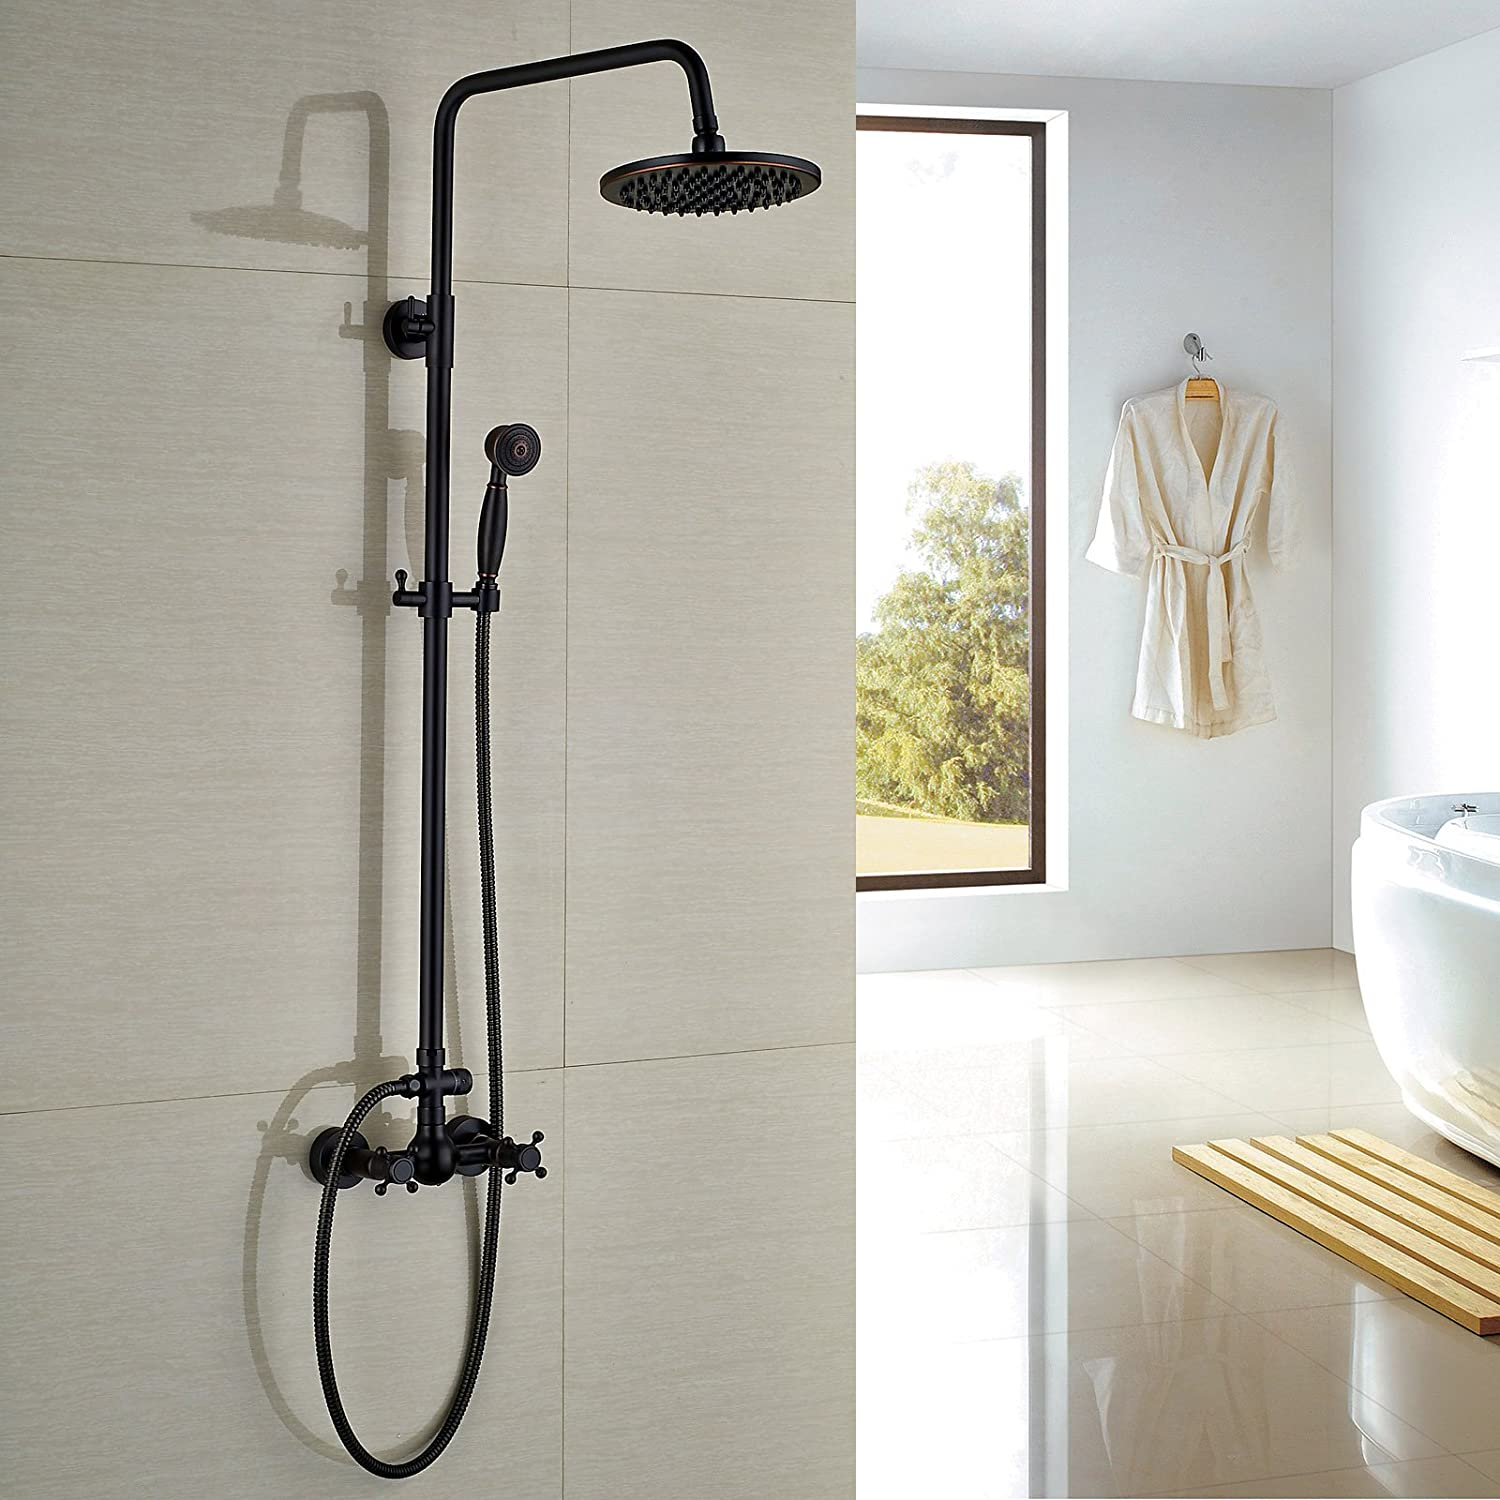 one piece shower faucet. Rozin Bathroom Shower Faucet Set 8  Rain Head Hand Spray Oil Rubbed Bronze Bathtub Systems Amazon com Kitchen Bath Fixtures